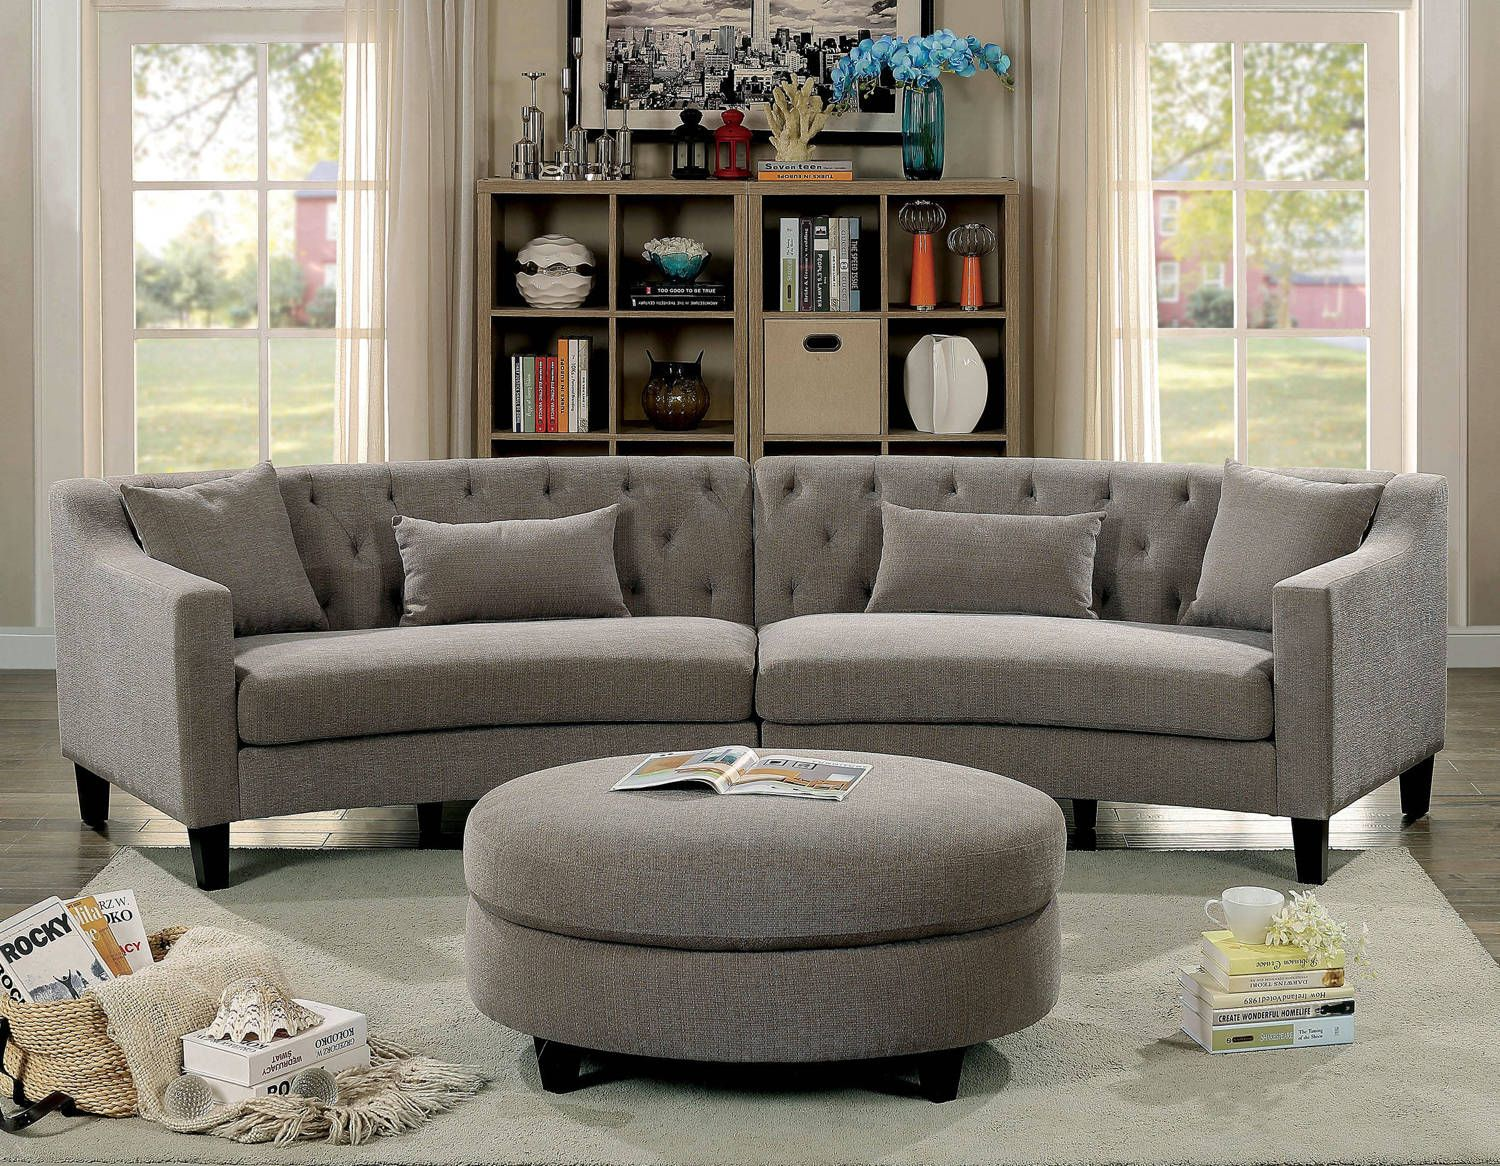 furniture of america sarin sectional and ottoman grey fabric rh pinterest com